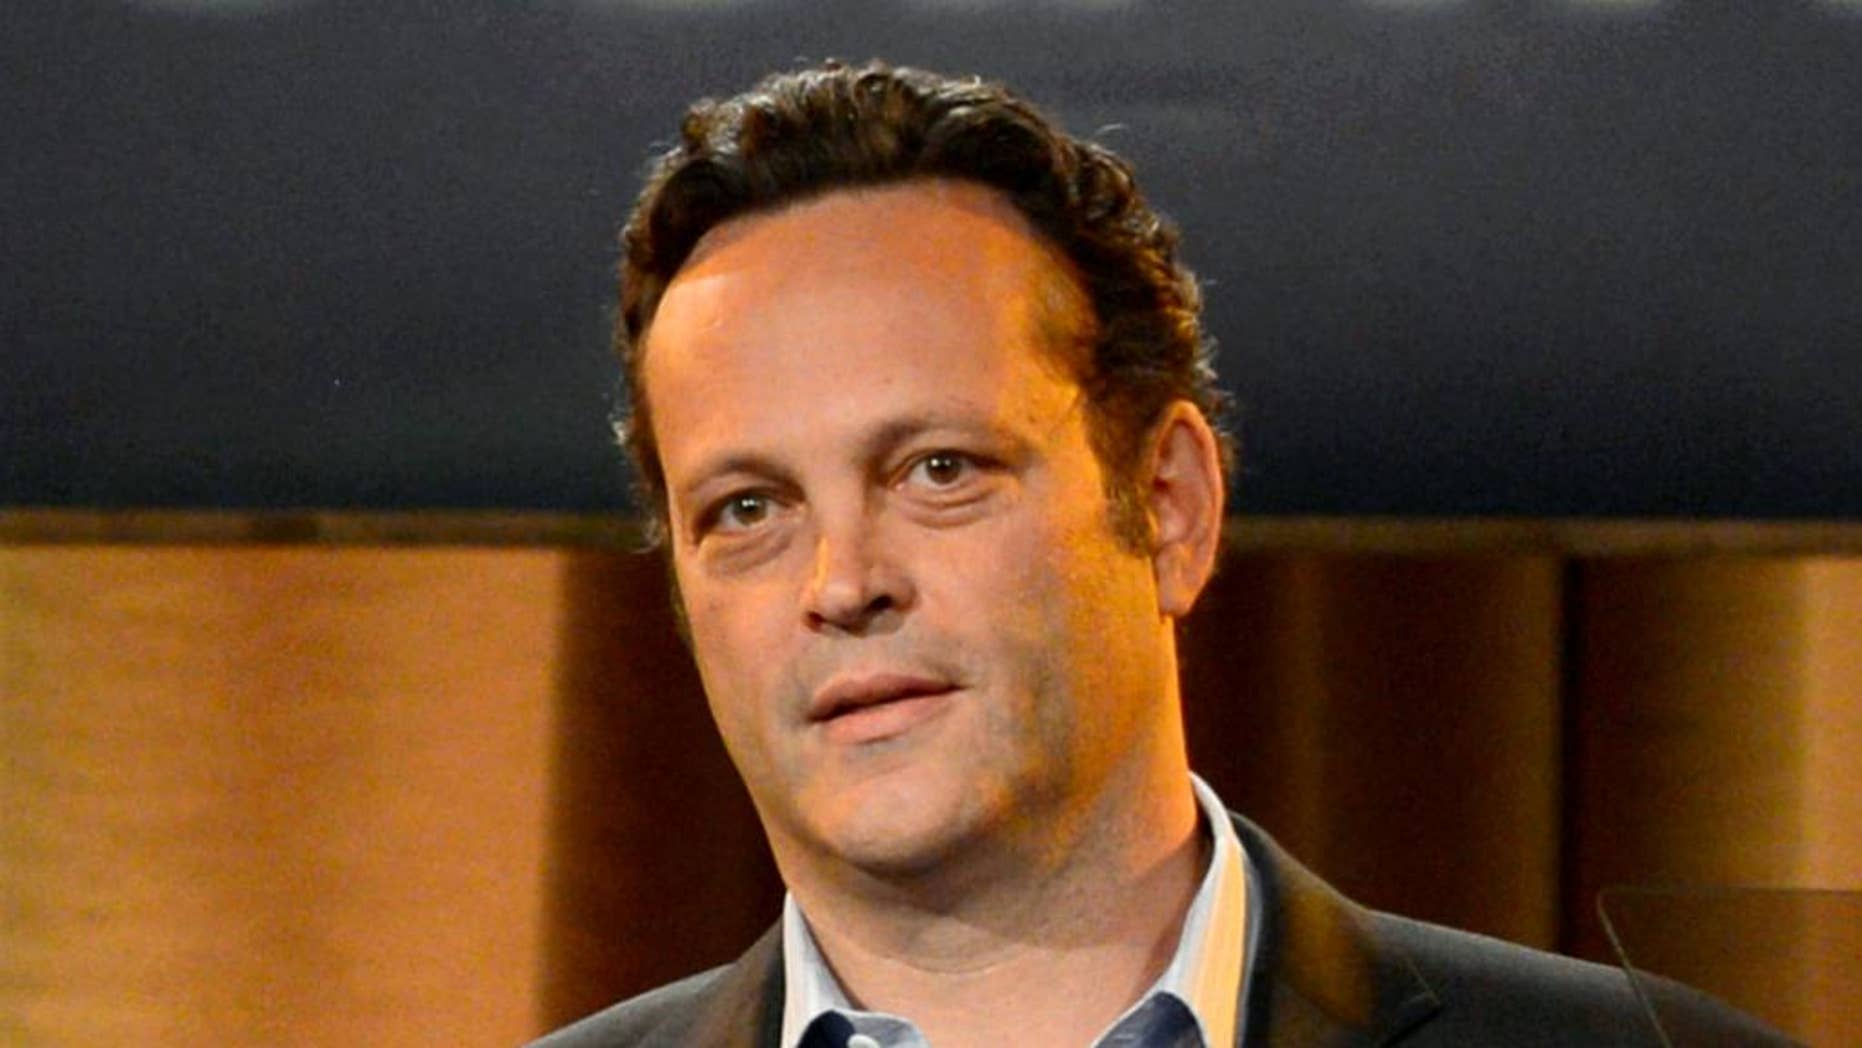 """FILE - This Aug. 13, 2013, file photo shows Vince Vaughn at the Hollywood Foreign Press Association Luncheon in Beverly Hills, Calif. Vaughn, who starred in the movies """"Wedding Crashers,"""" """"Old School"""" and """"Swingers,"""" will serve as grand marshal for the upcoming Daytona 500.  (Photo by Chris Pizzello/Invision/AP, File)"""